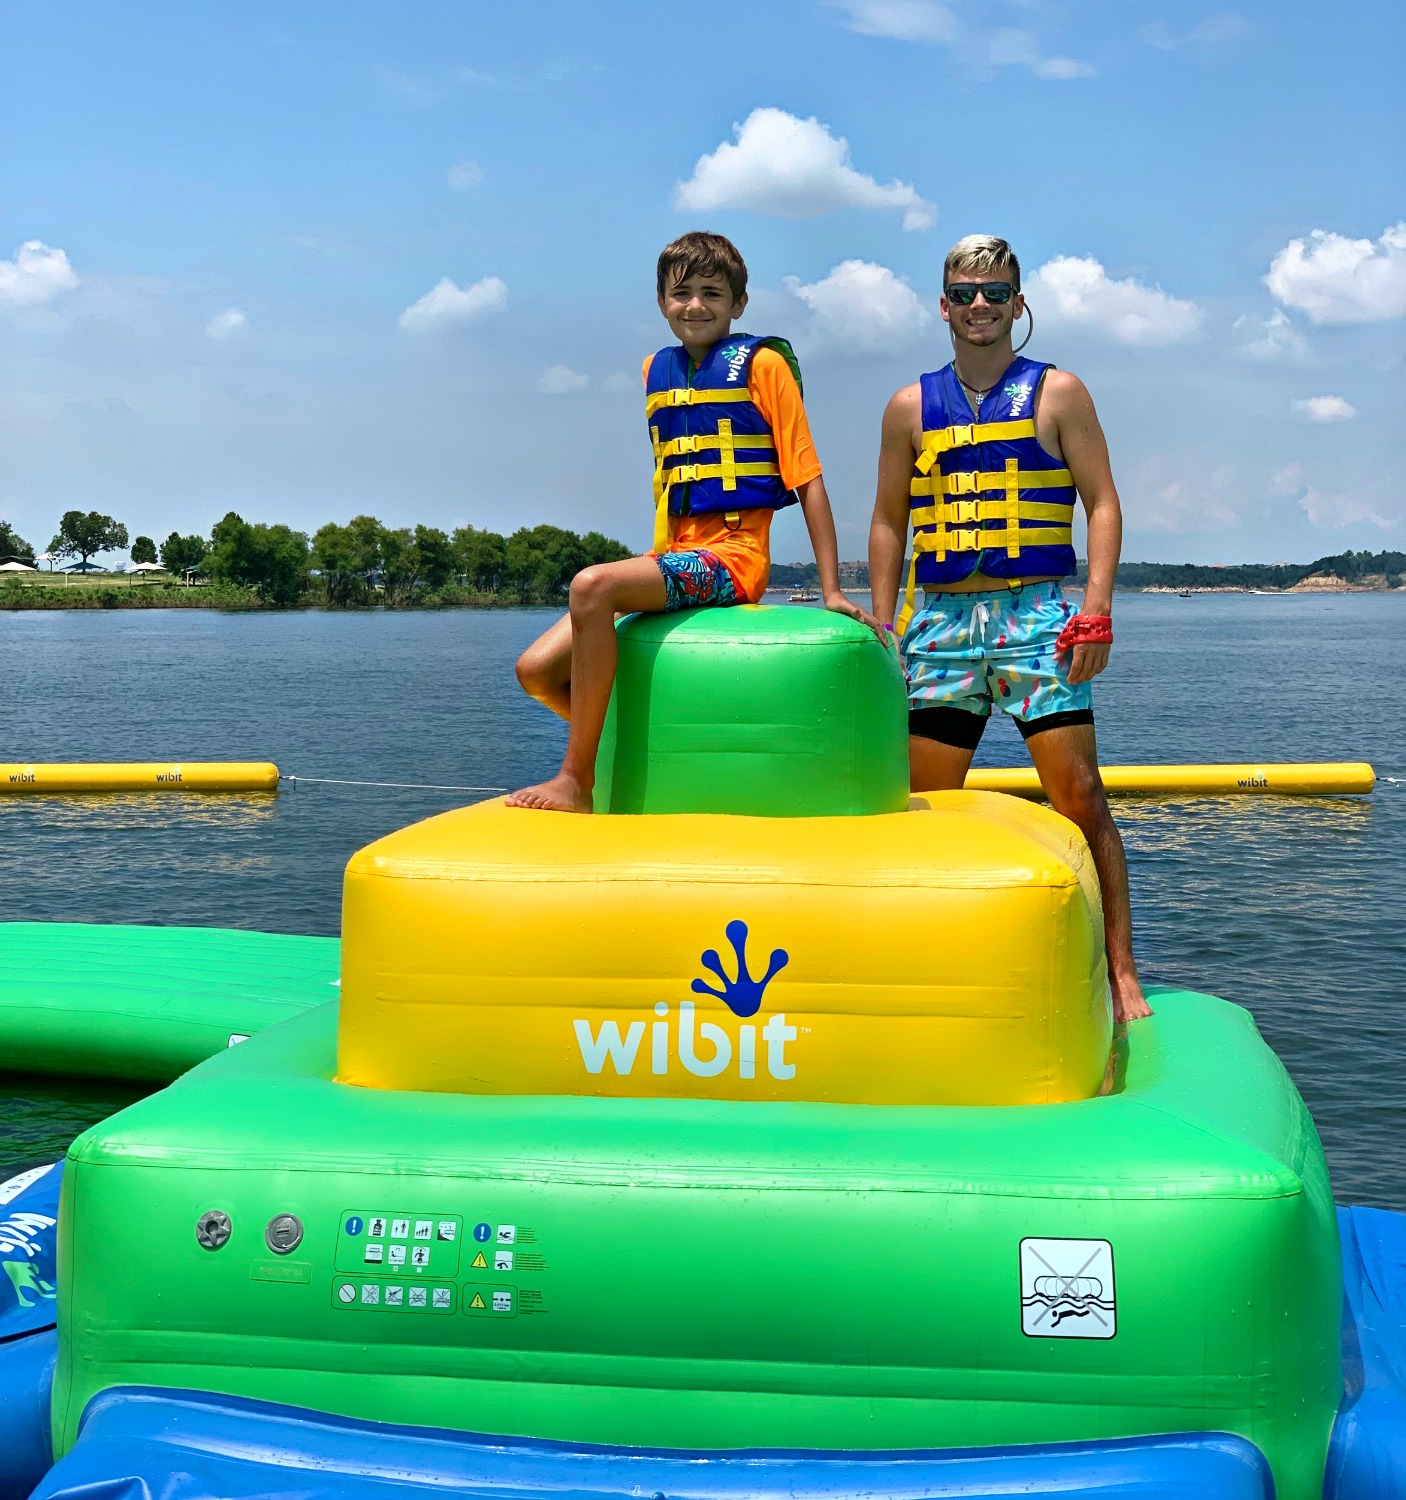 wibit inflatable water obstacle